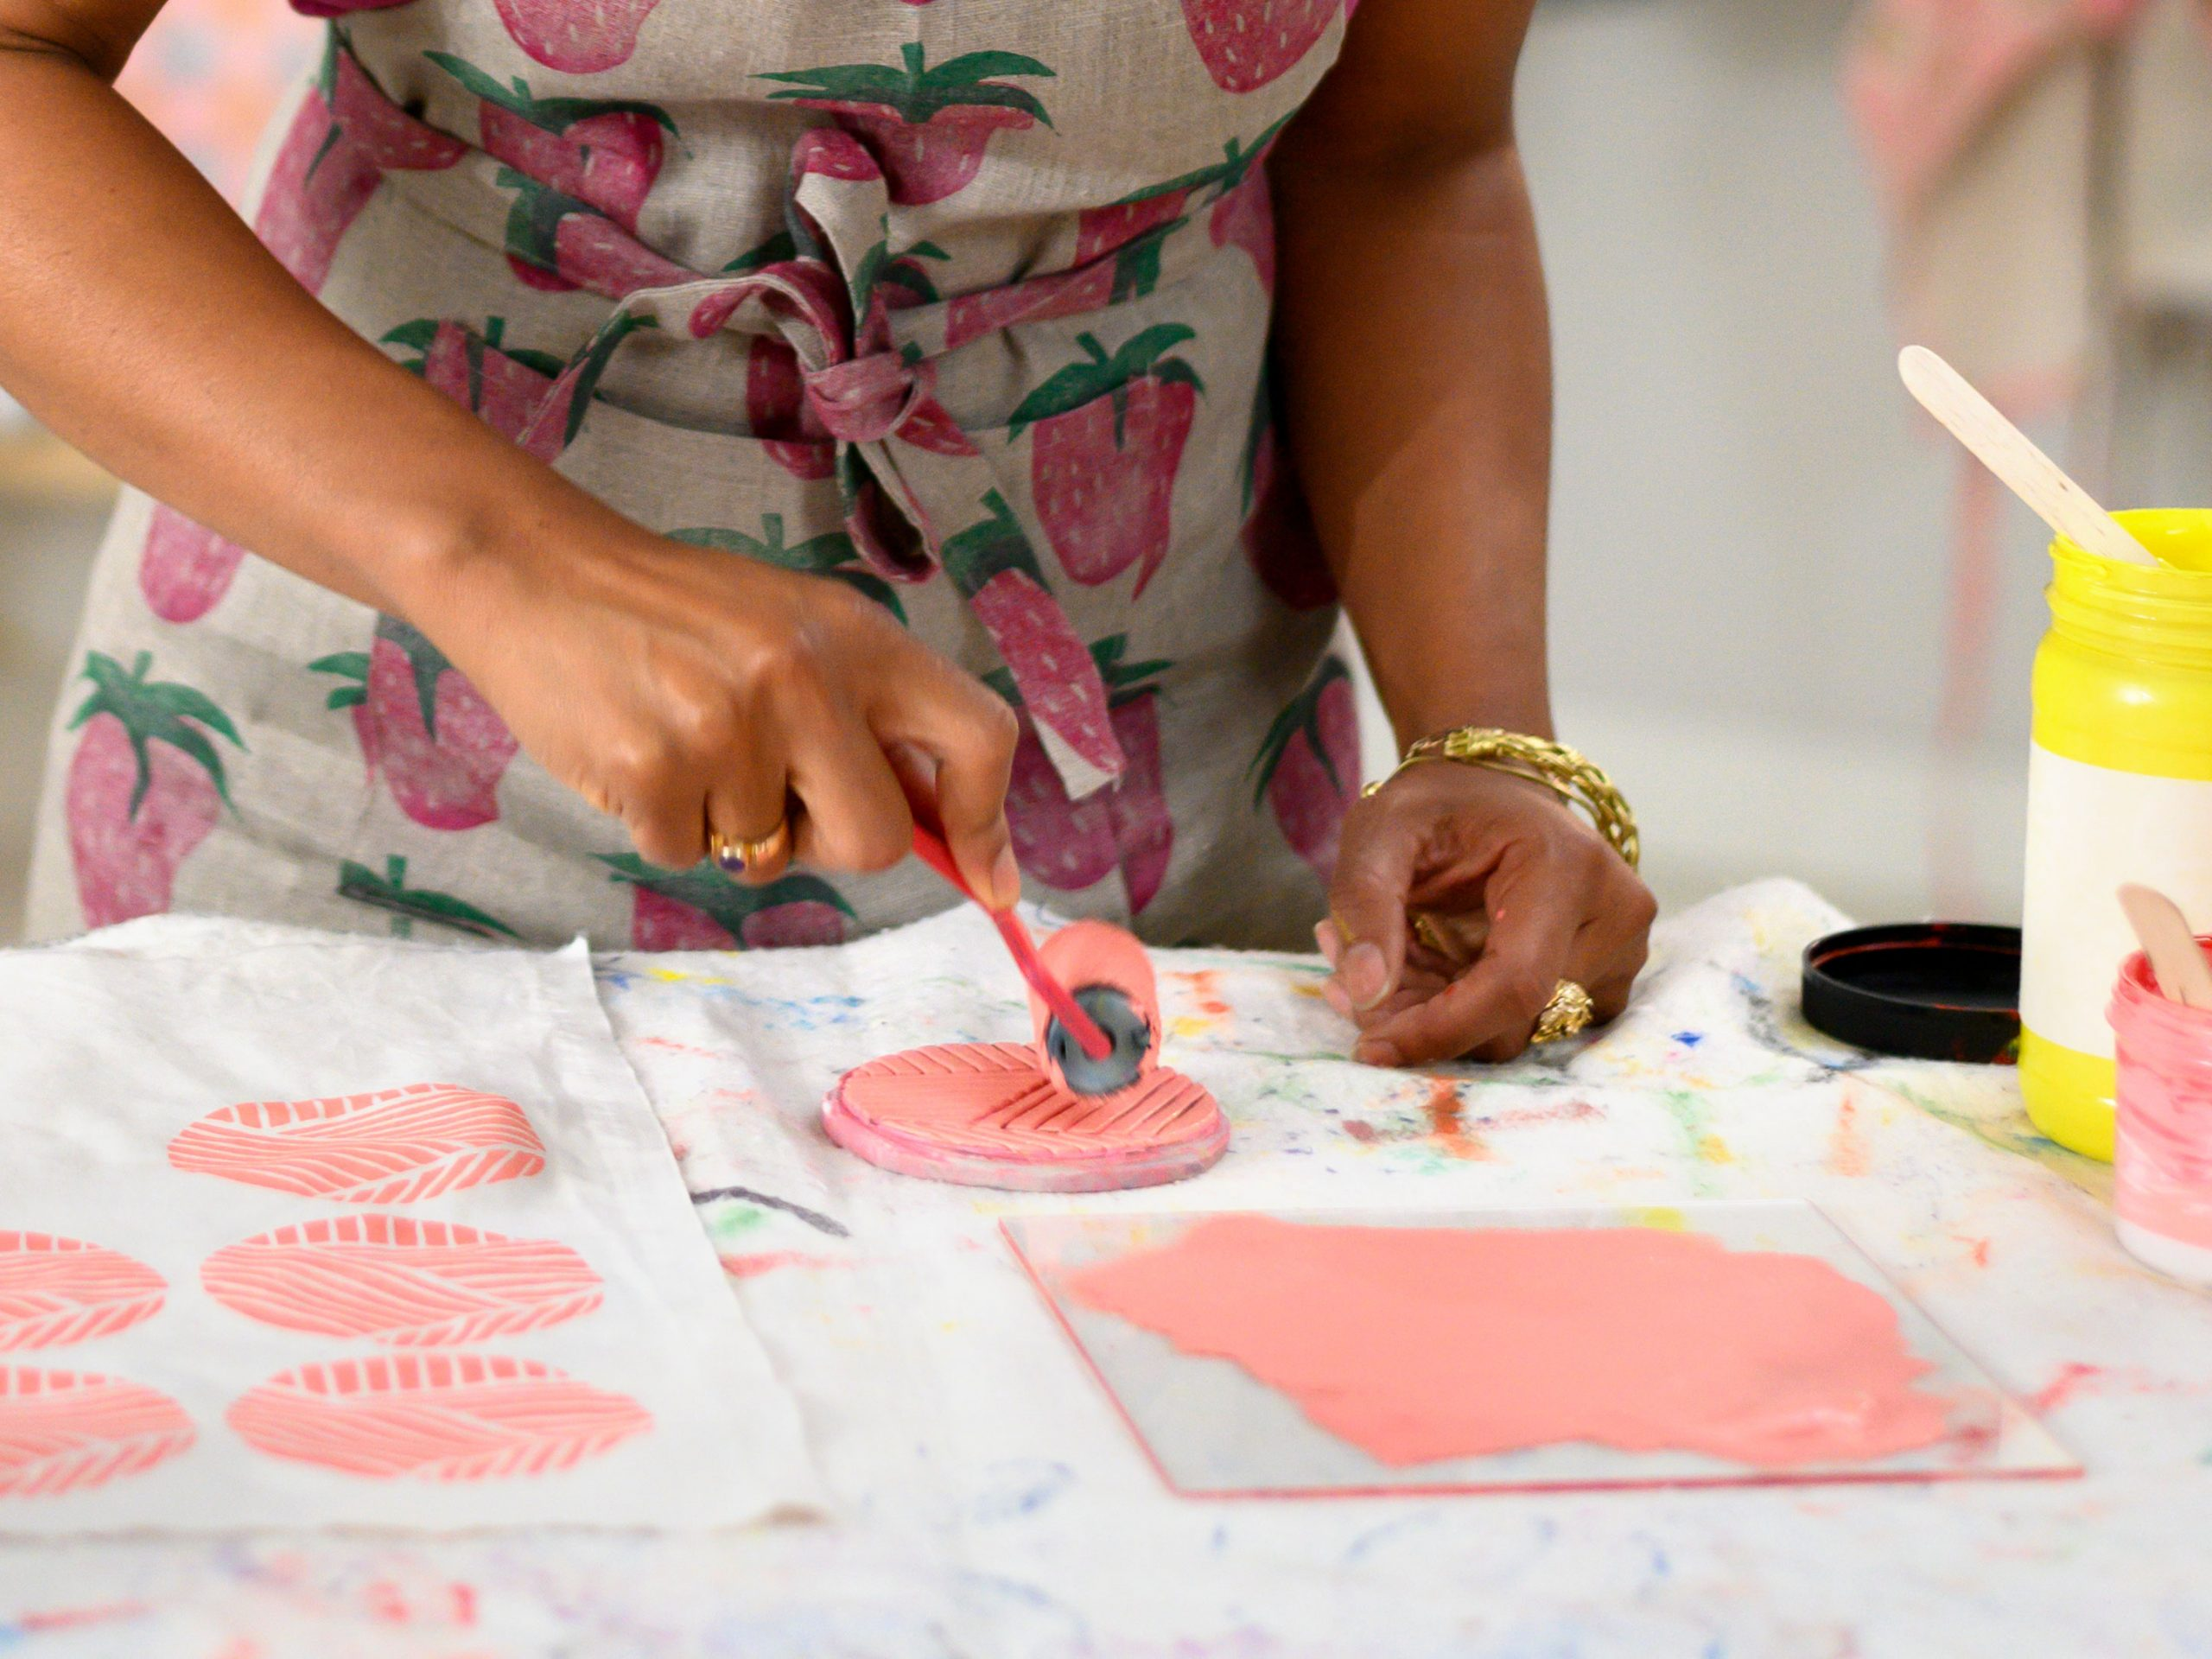 The Beginner S Guide To Block Printing So You Can Design Your Own Fabric Craftsy